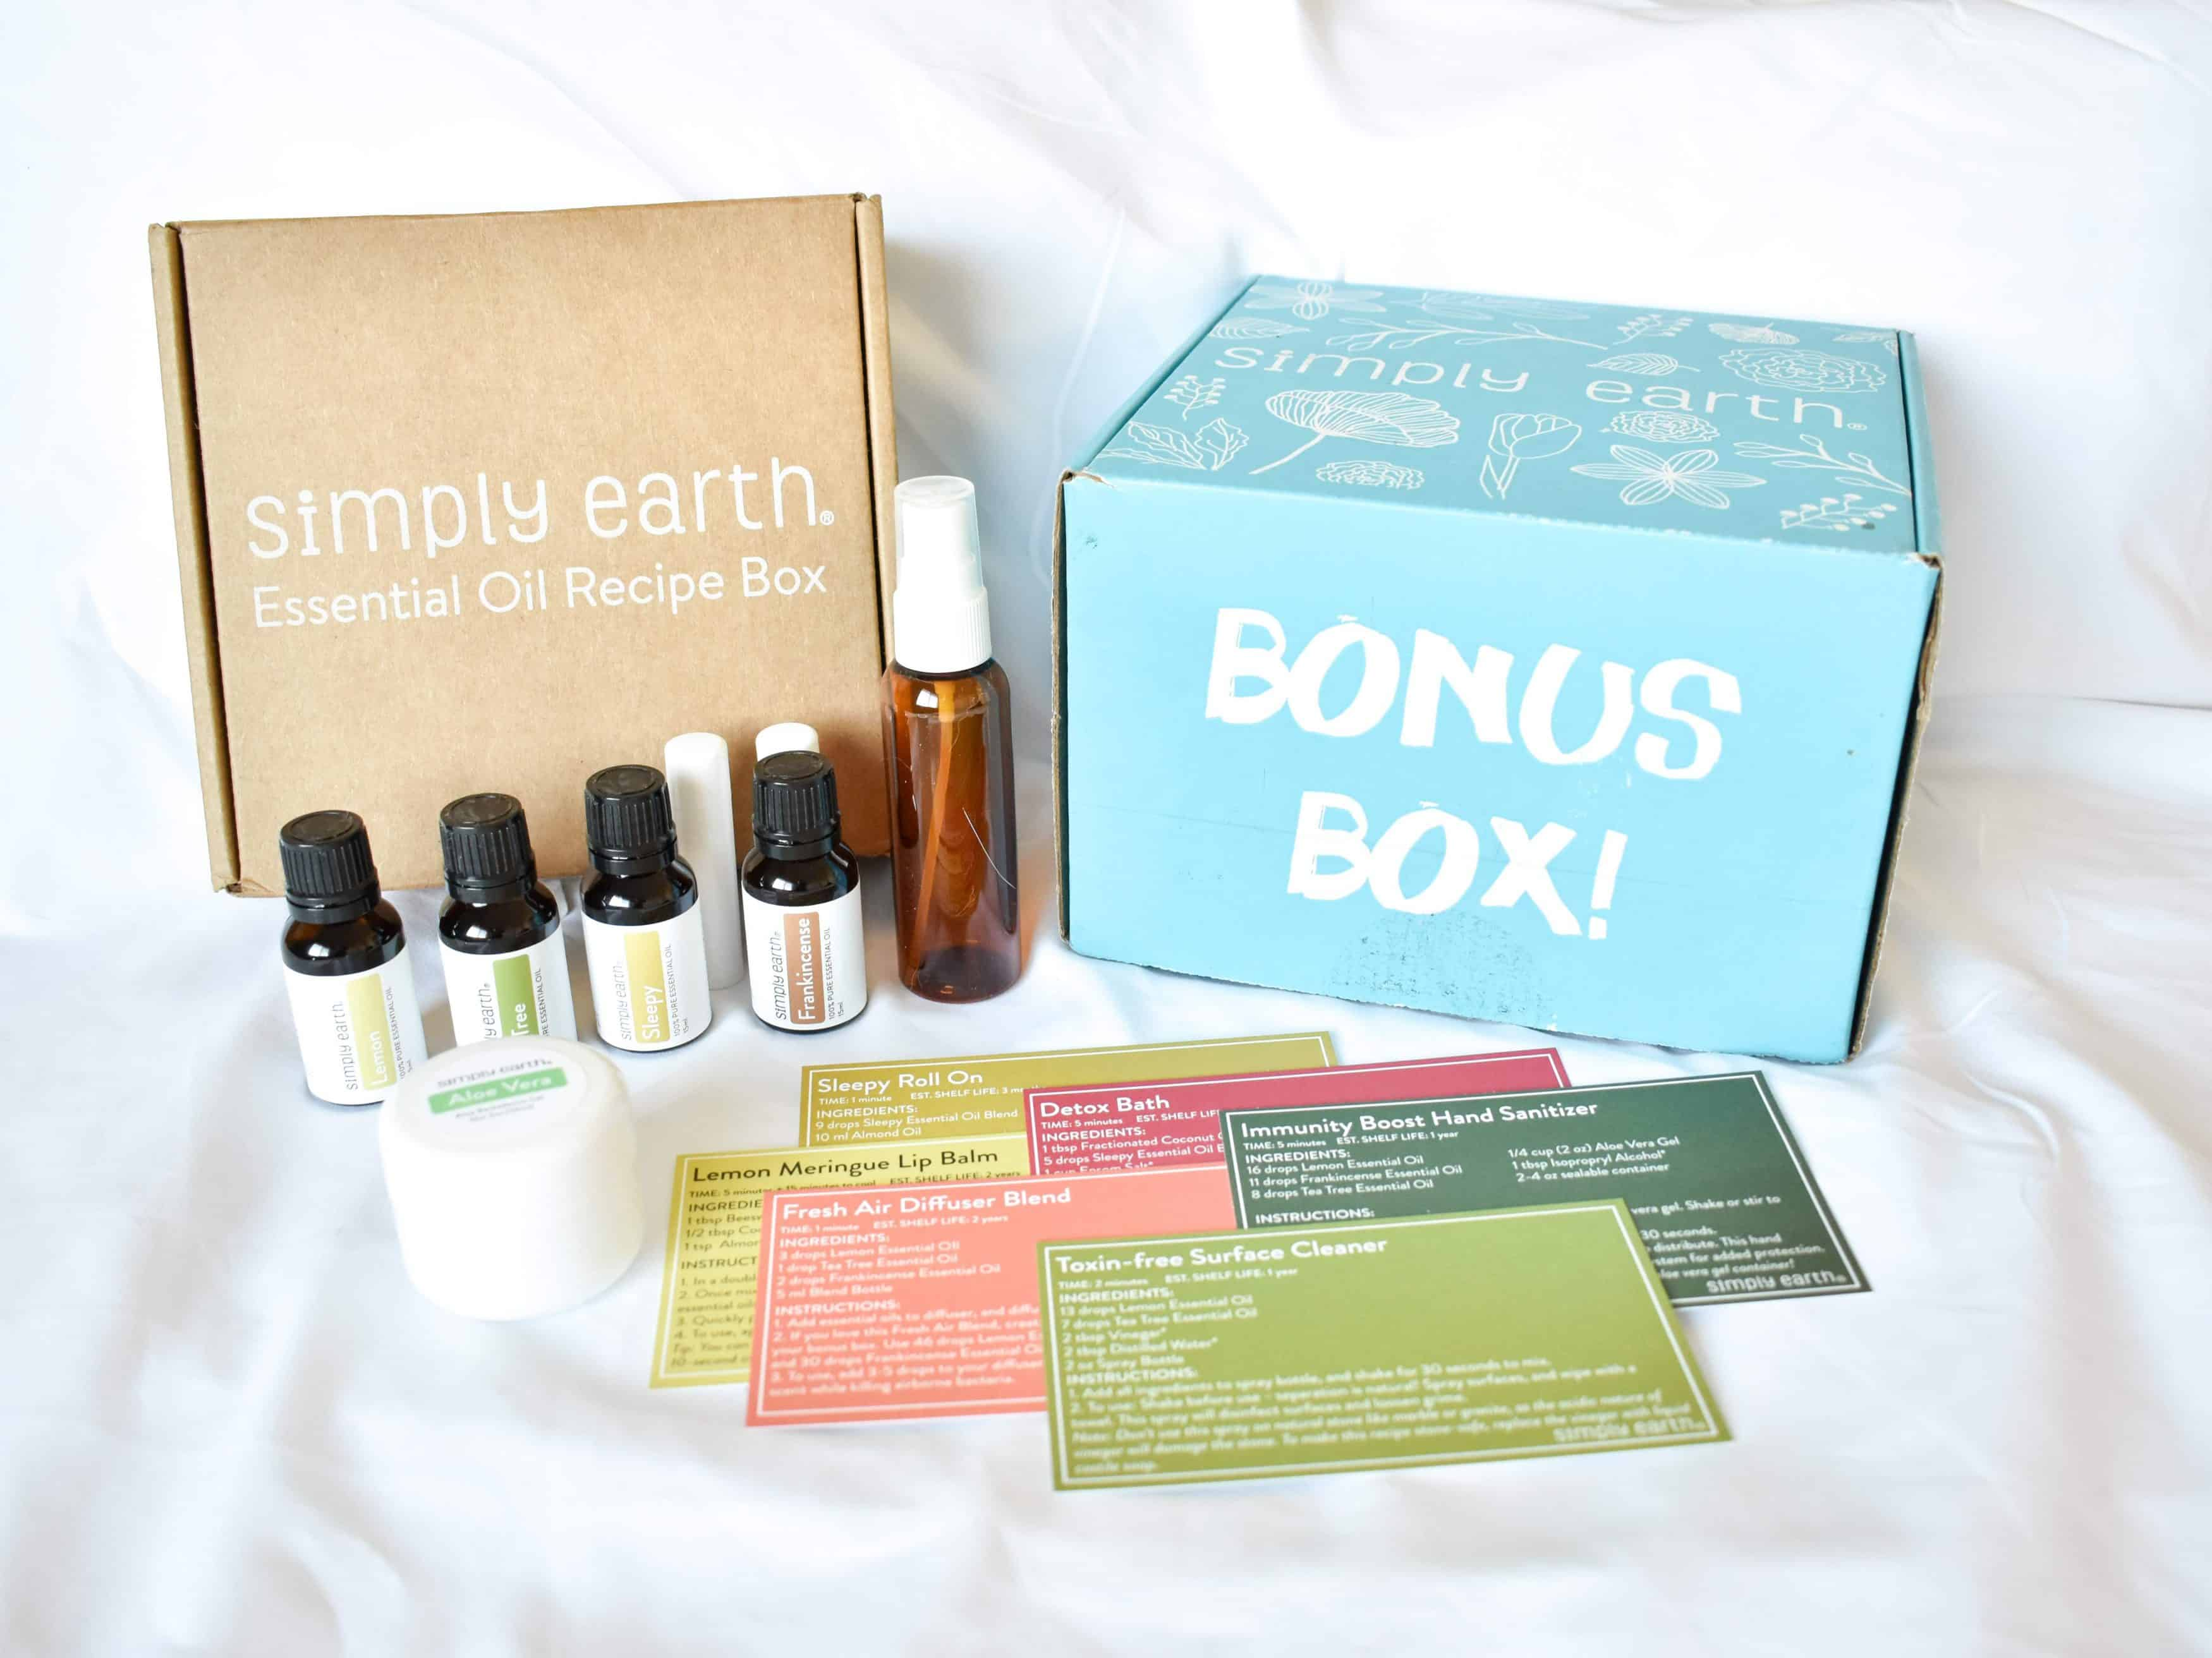 Simply Earth Starter Box and Big Bonus Box